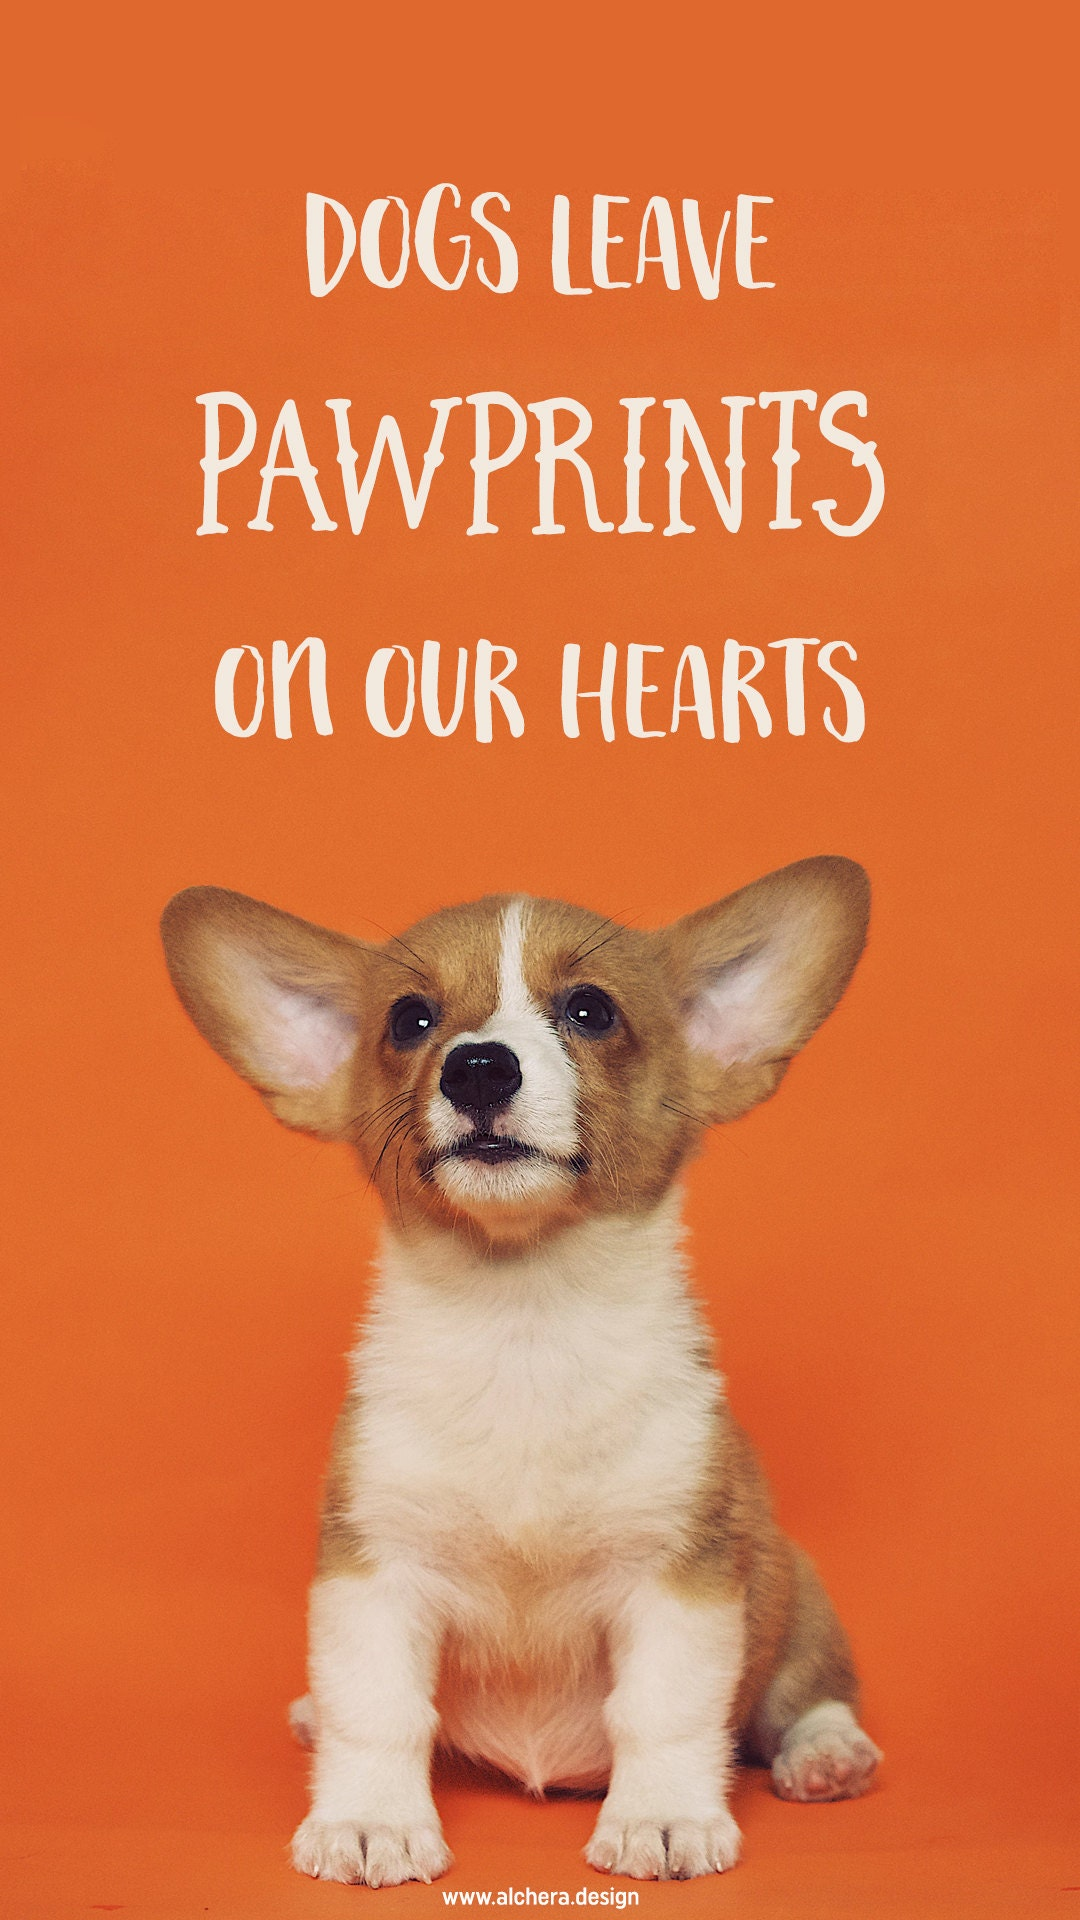 Dogs leave paw prints on our hearts.